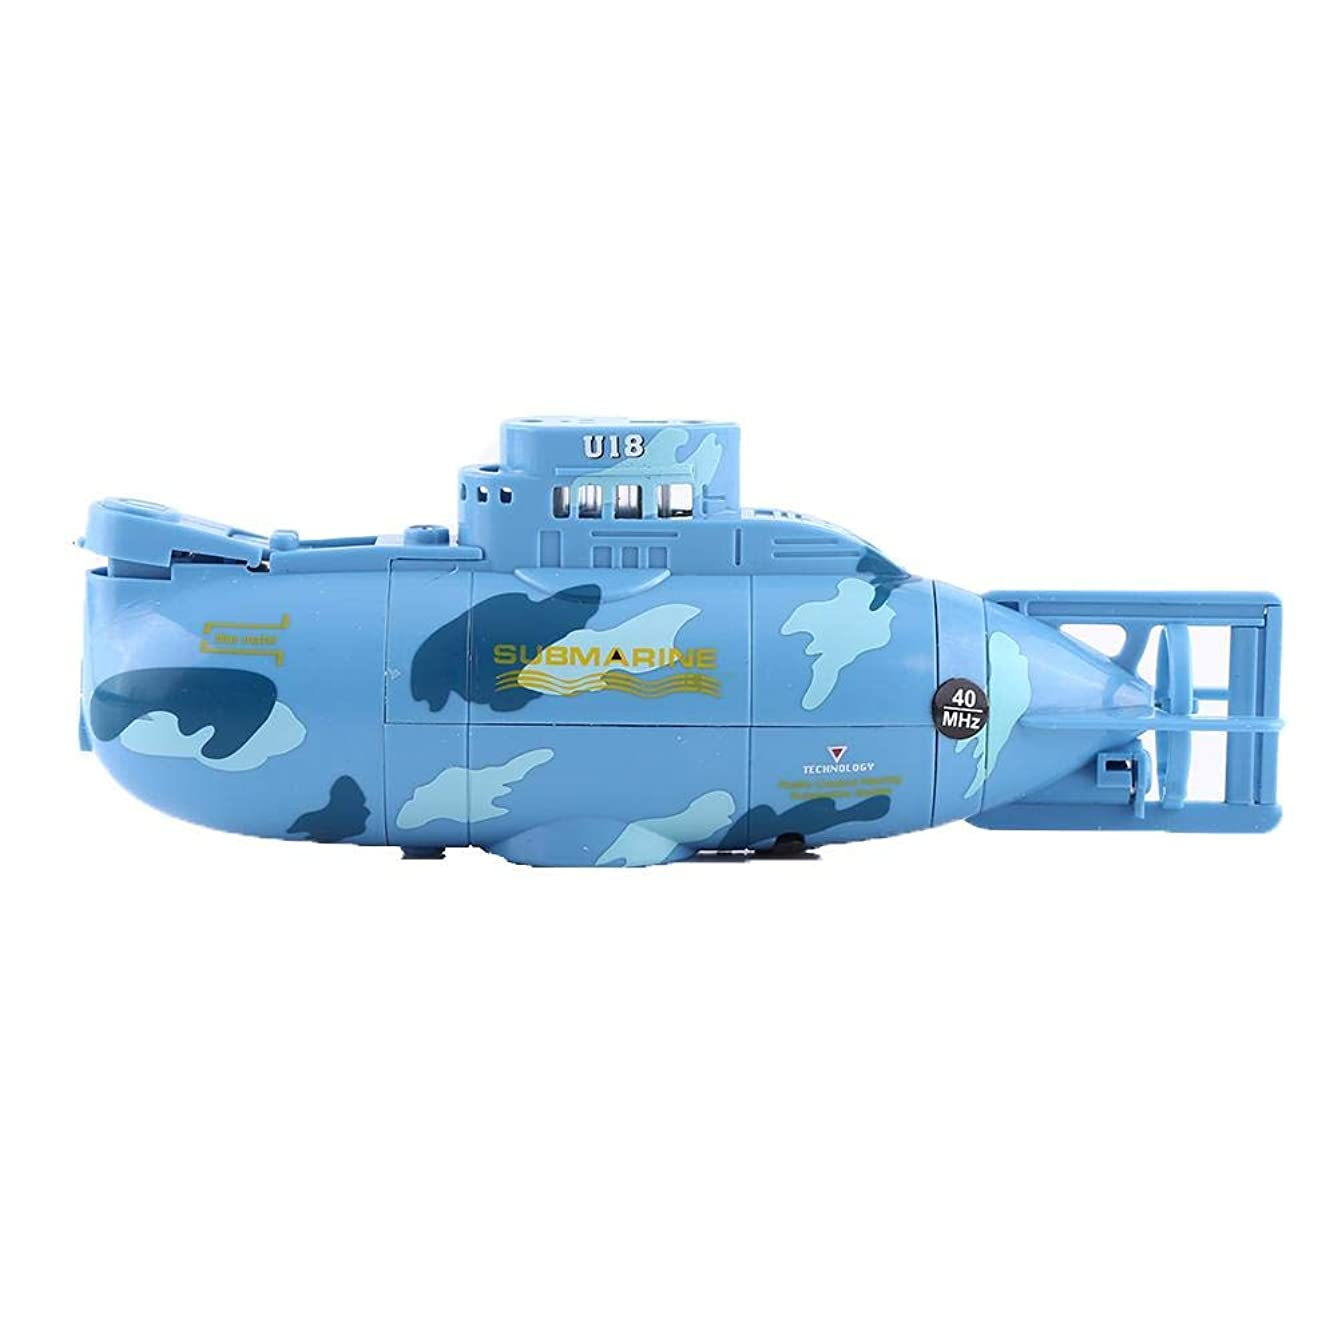 Dilwe Submarine Toy, Rechargeable Remote Control Boat Mini Bath Toy with USB Cable for Kids Gift Toddlers Babies